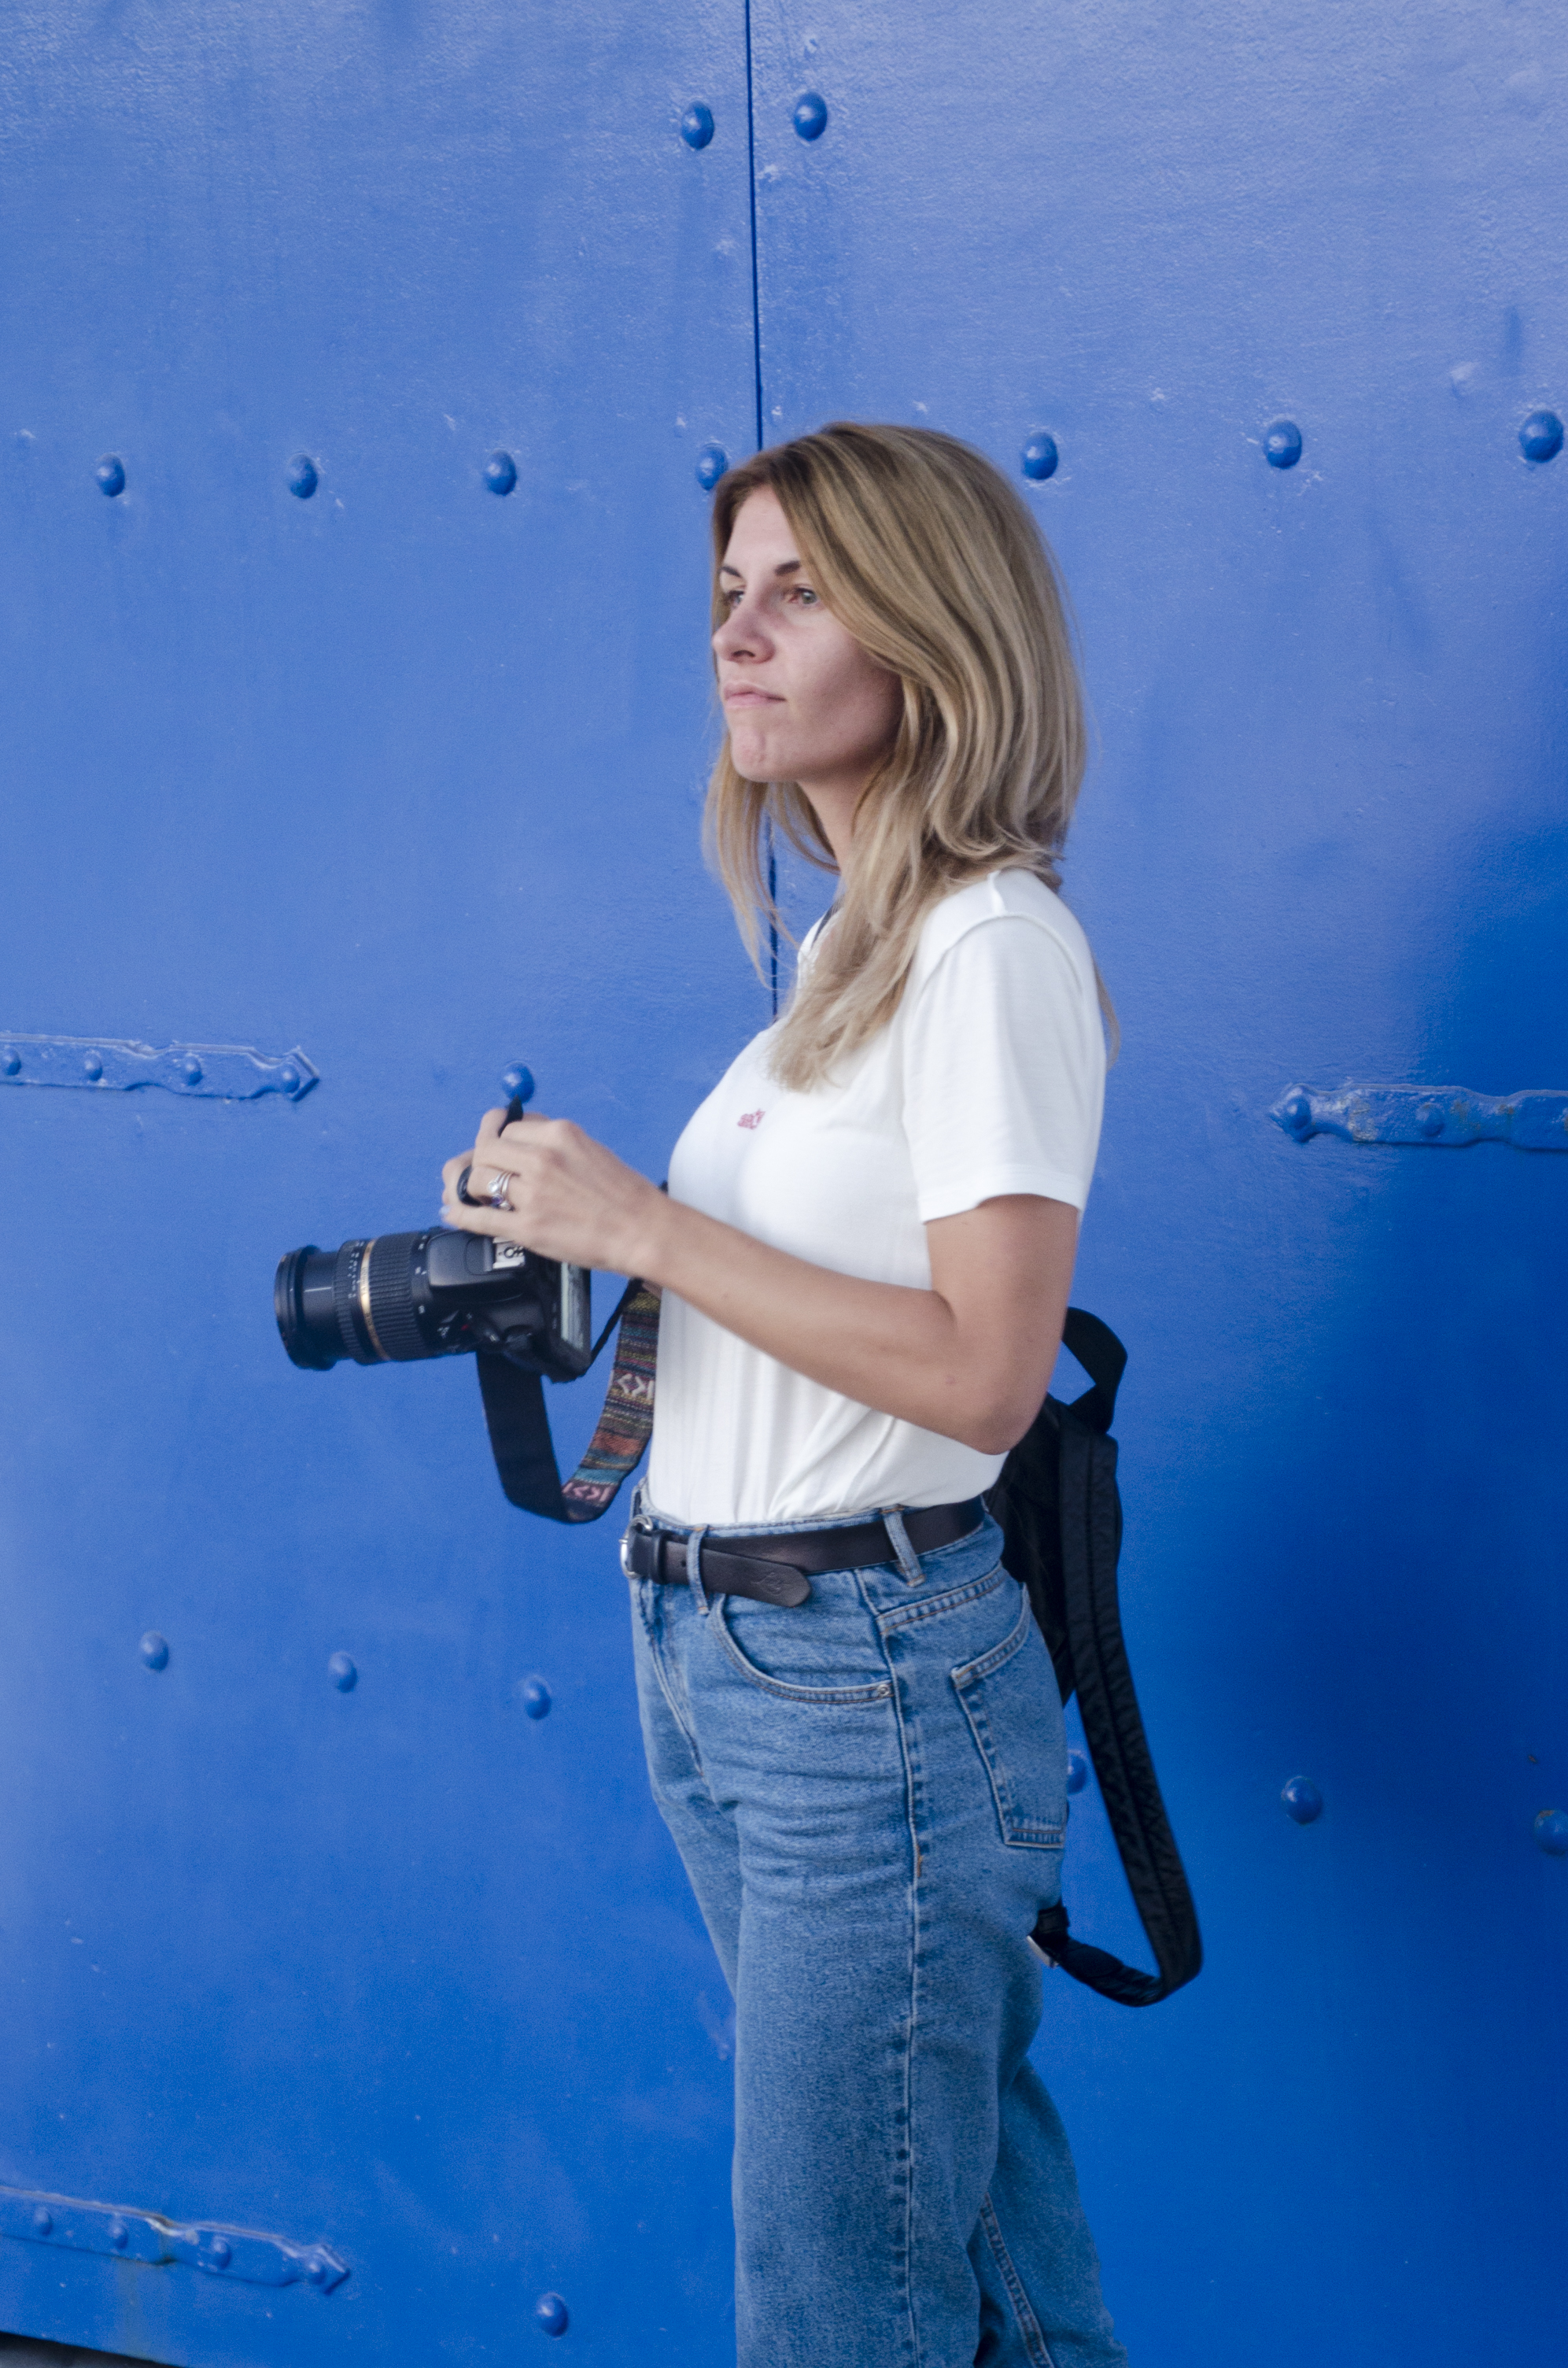 girl photographer on blue background